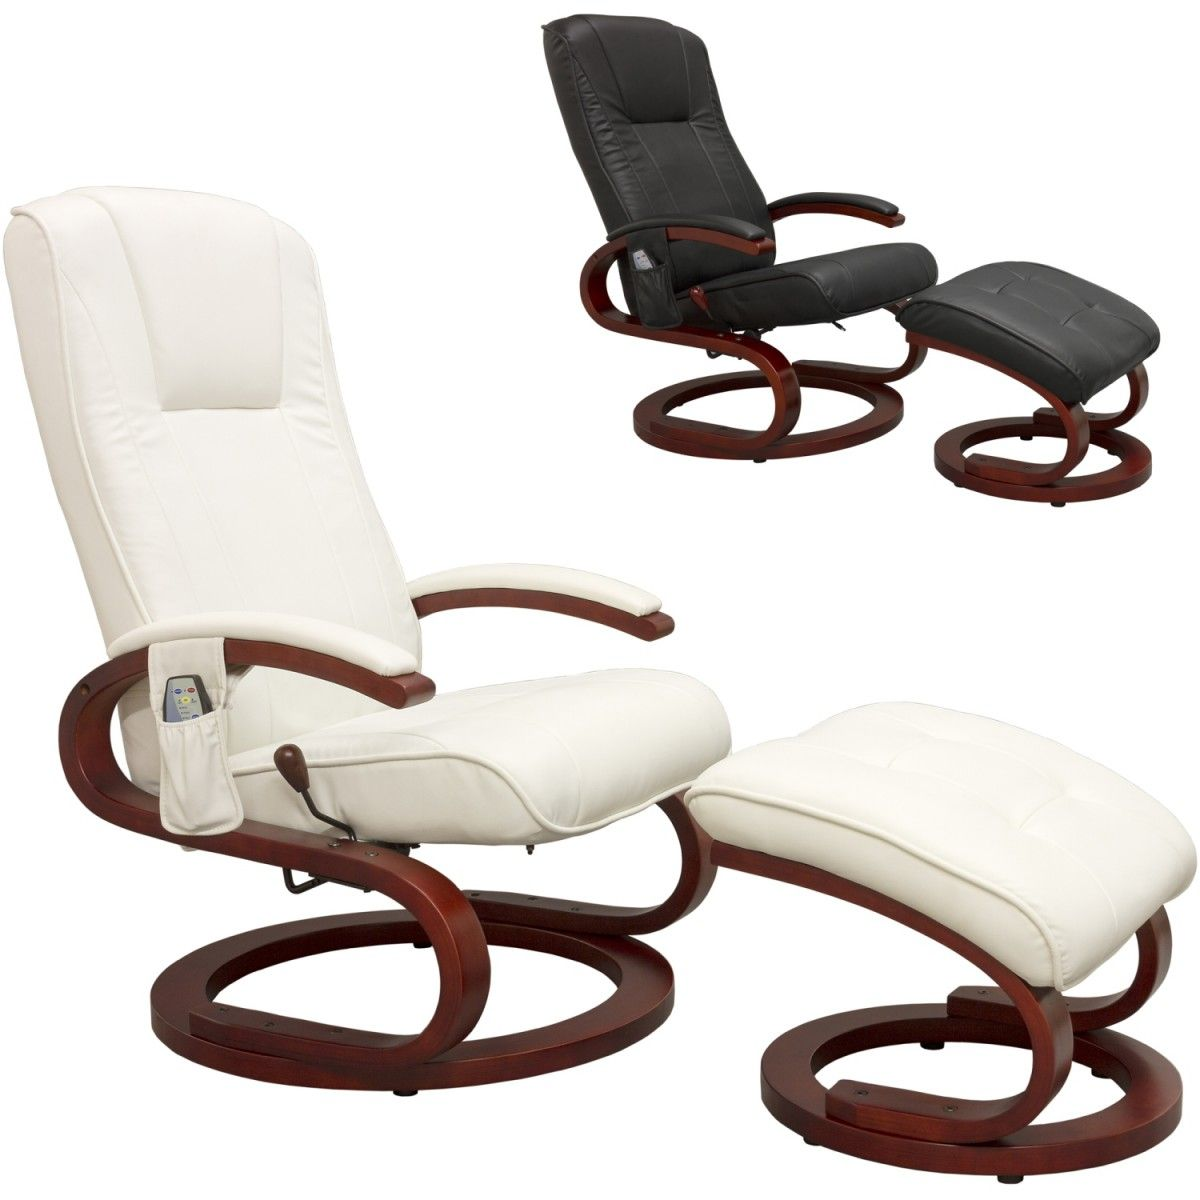 Design bürostuhl  STILISTA® Massagesessel im S-Design #Bürostuhl #Chair #RacingChair ...